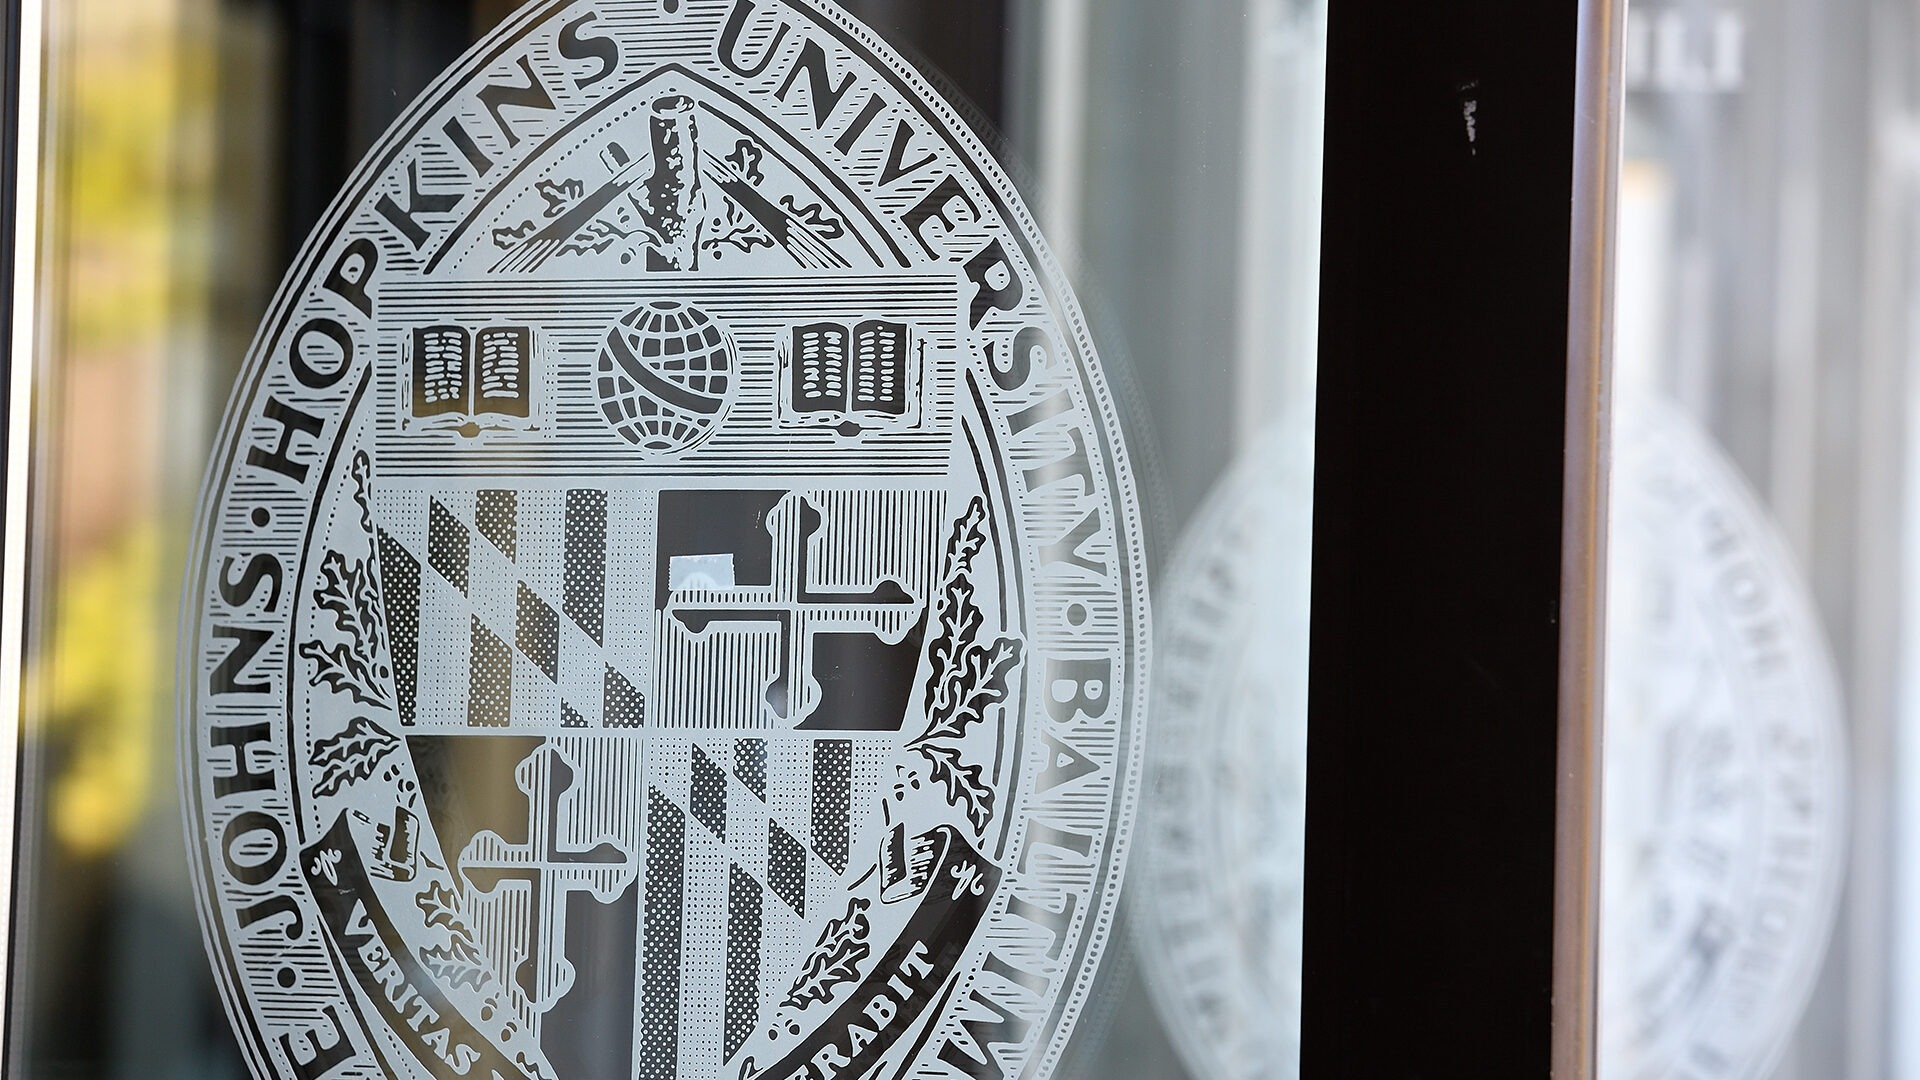 The JHU crest is shown on a glass door.